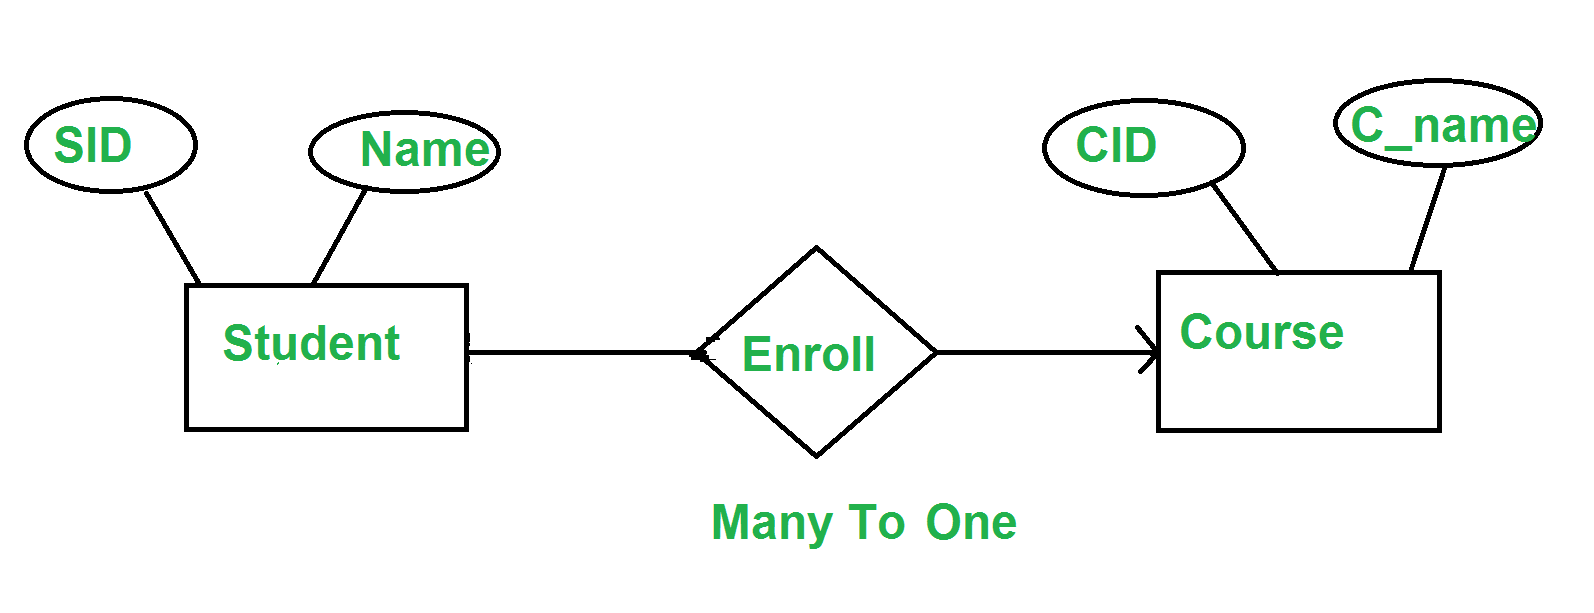 Many To One Er Diagram